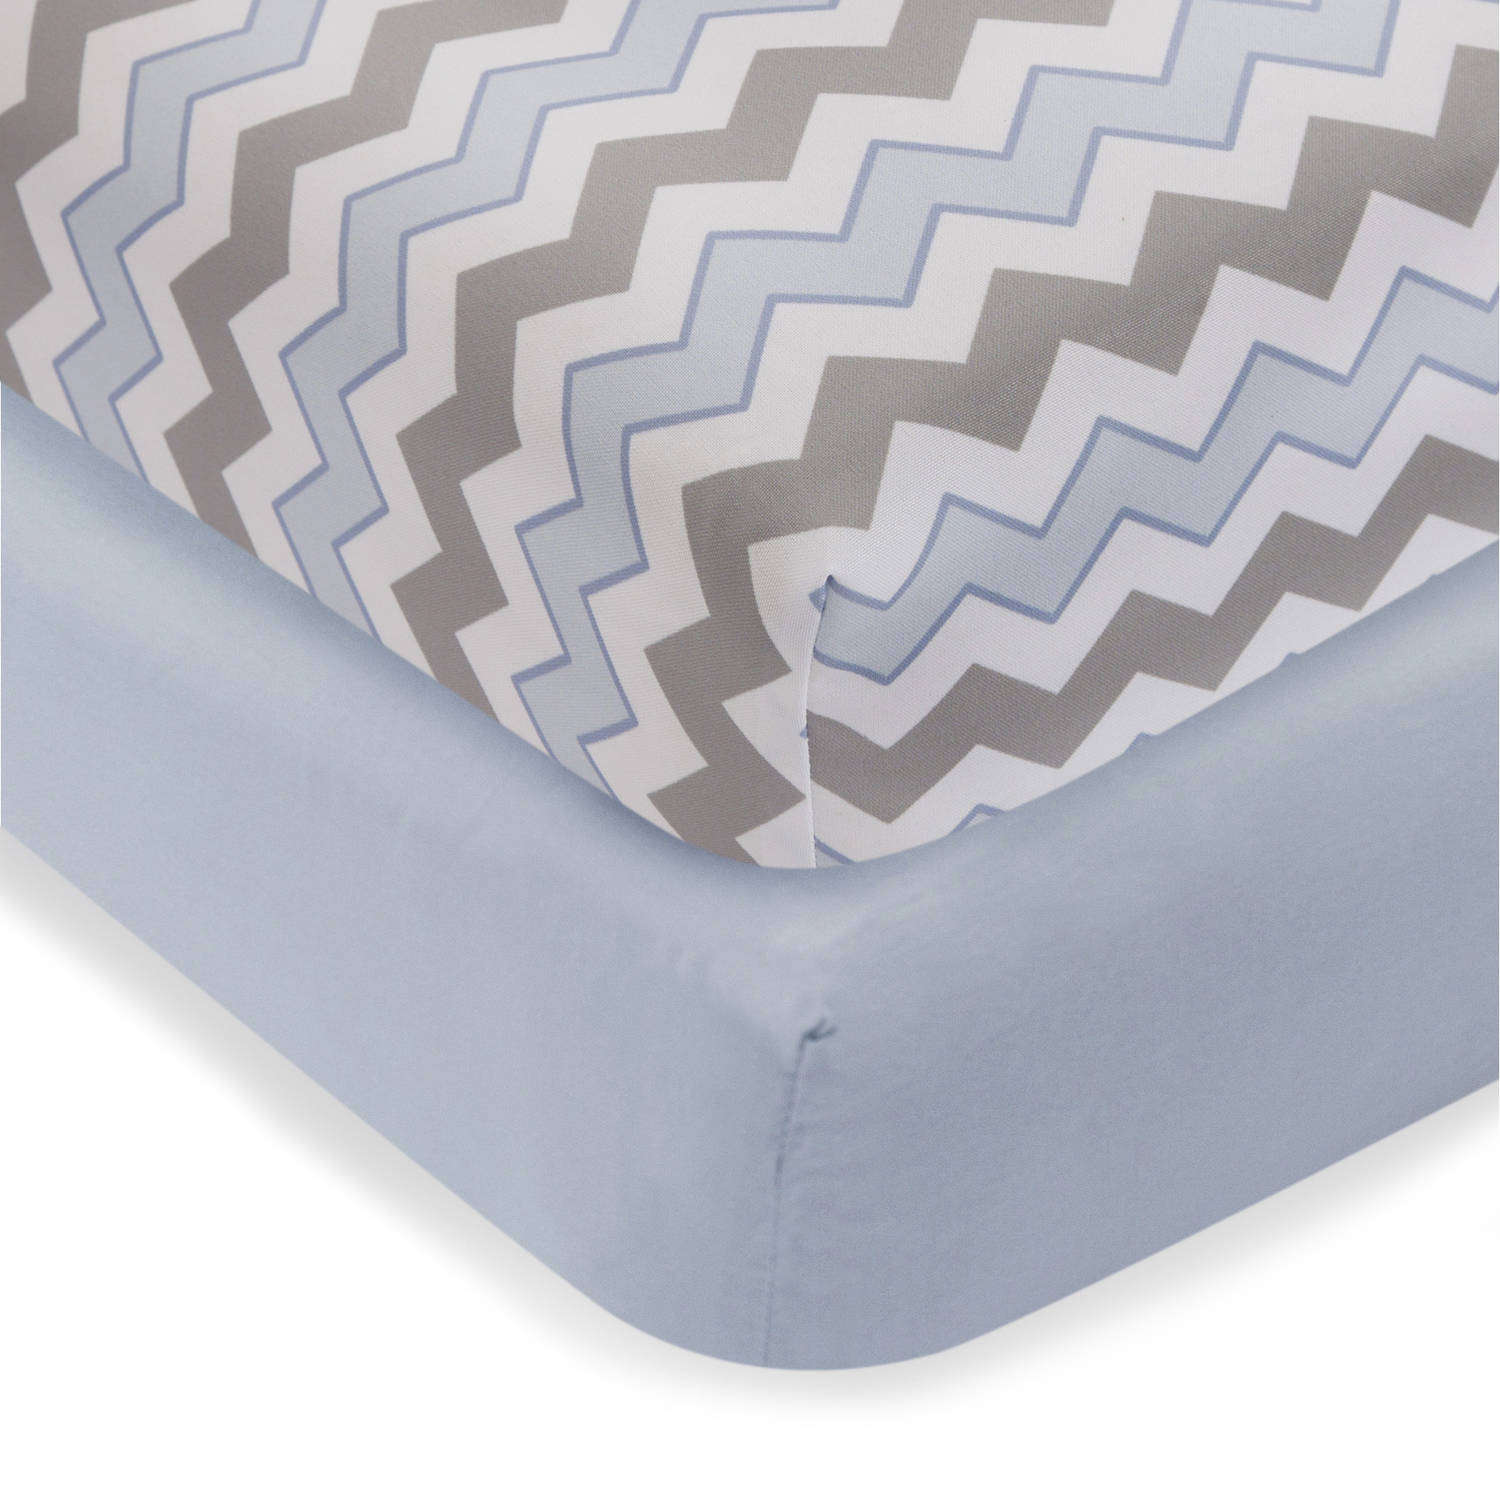 Bedtime Originals Mod Monkey Crib Sheets, 2pk